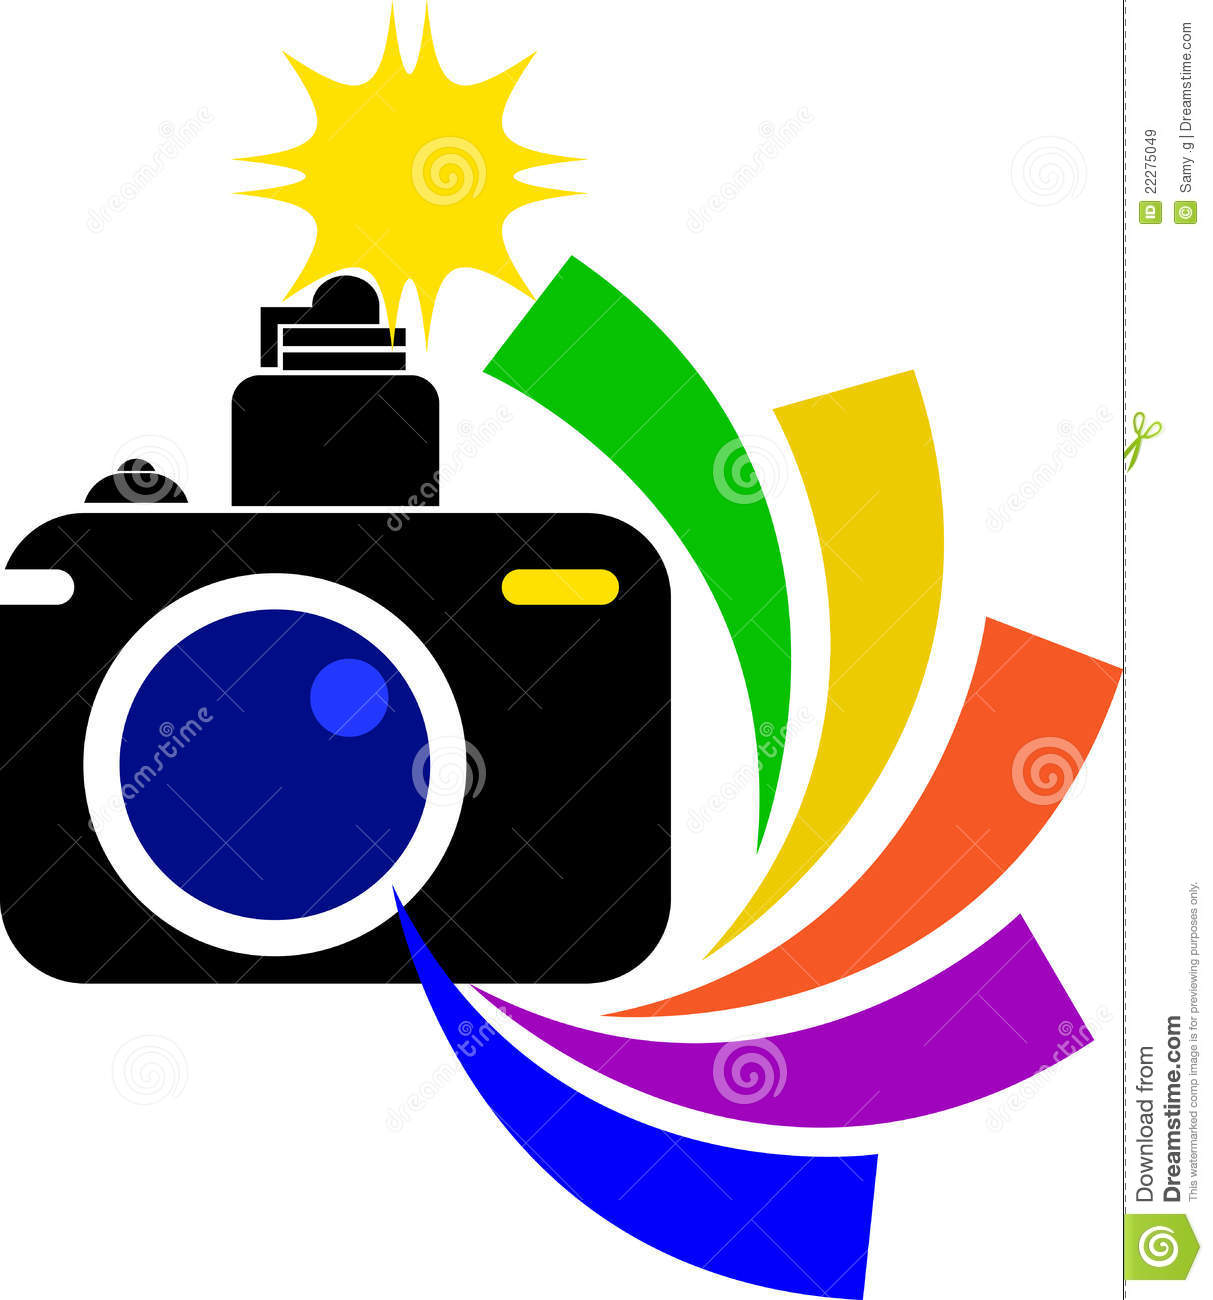 Flash clipart digital photography Free Images Clipart Camera Illustration